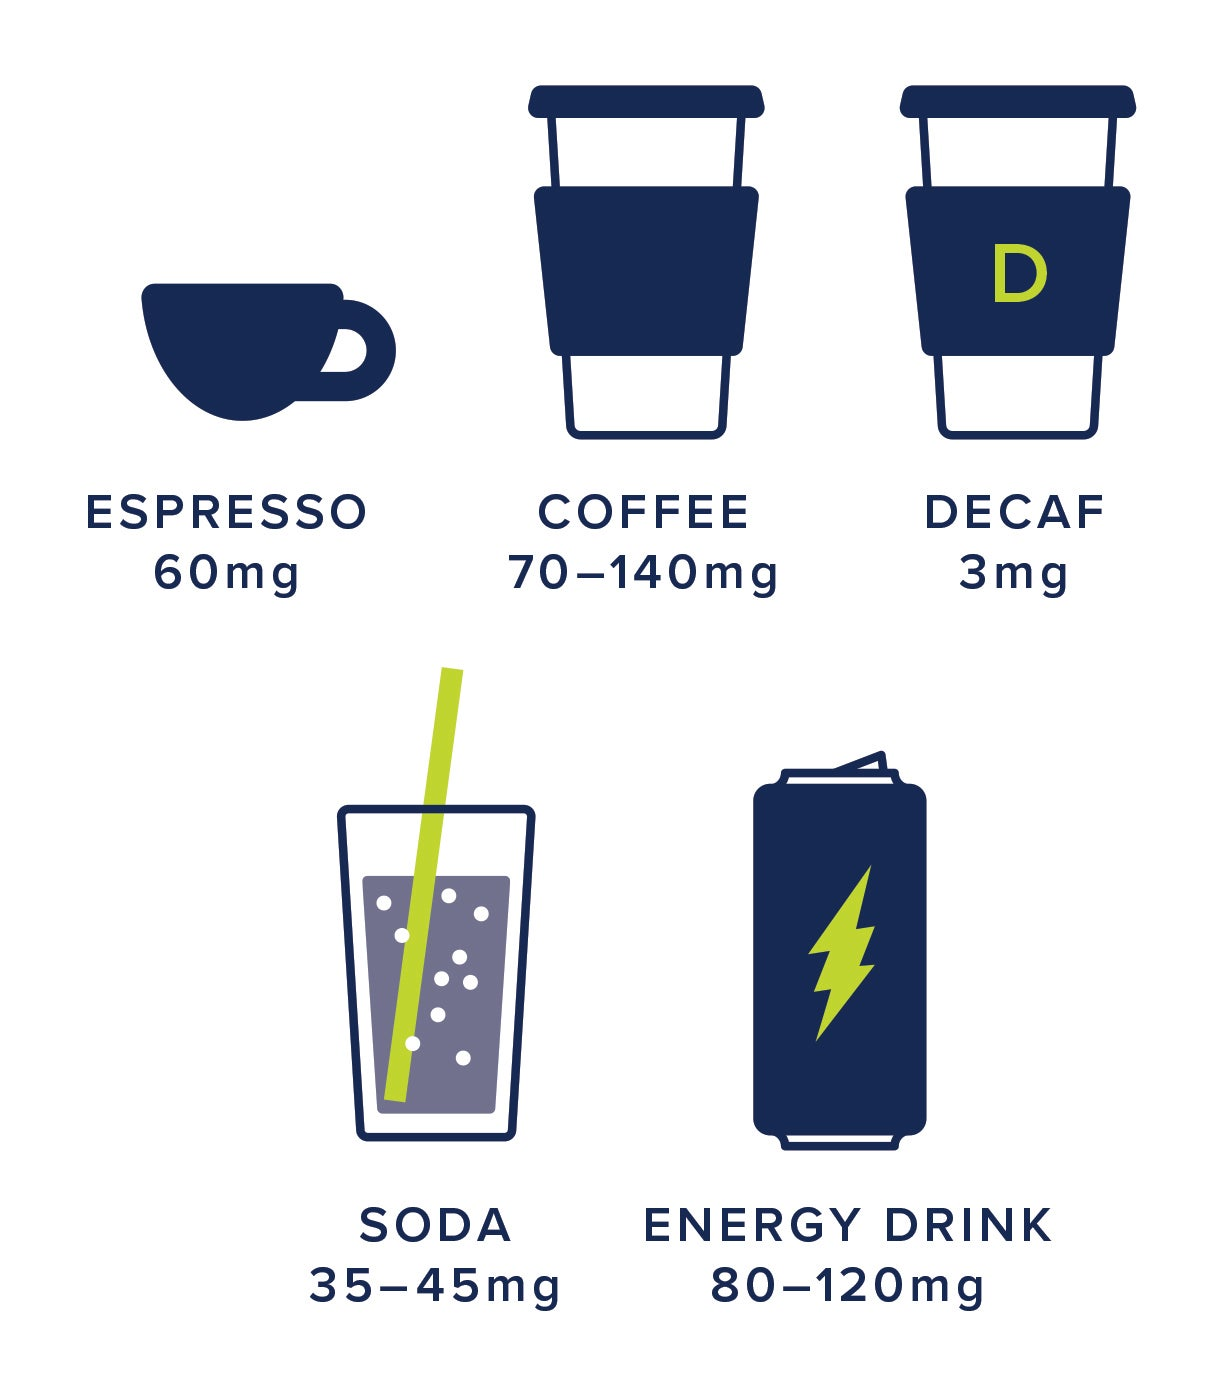 Caffeine content of different drinks